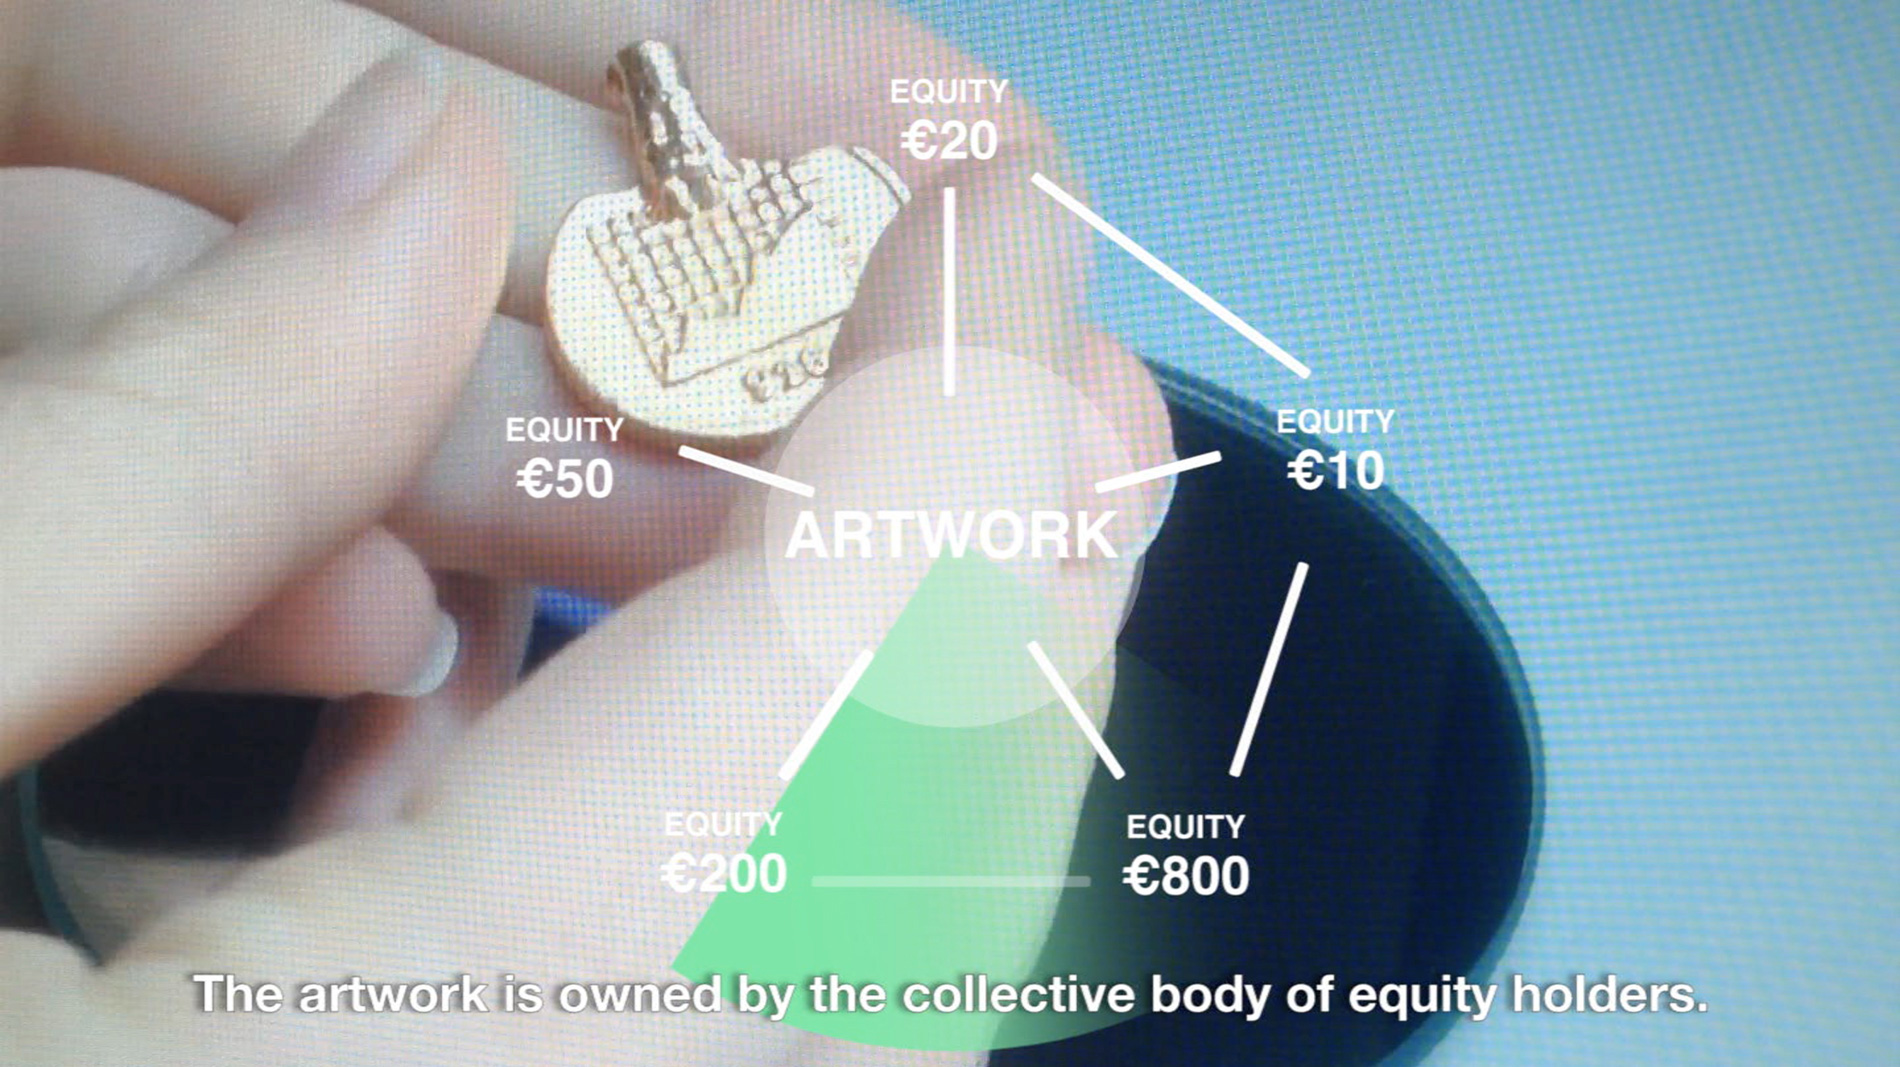 Co-ownership-model - selling shares, transmediale 2016